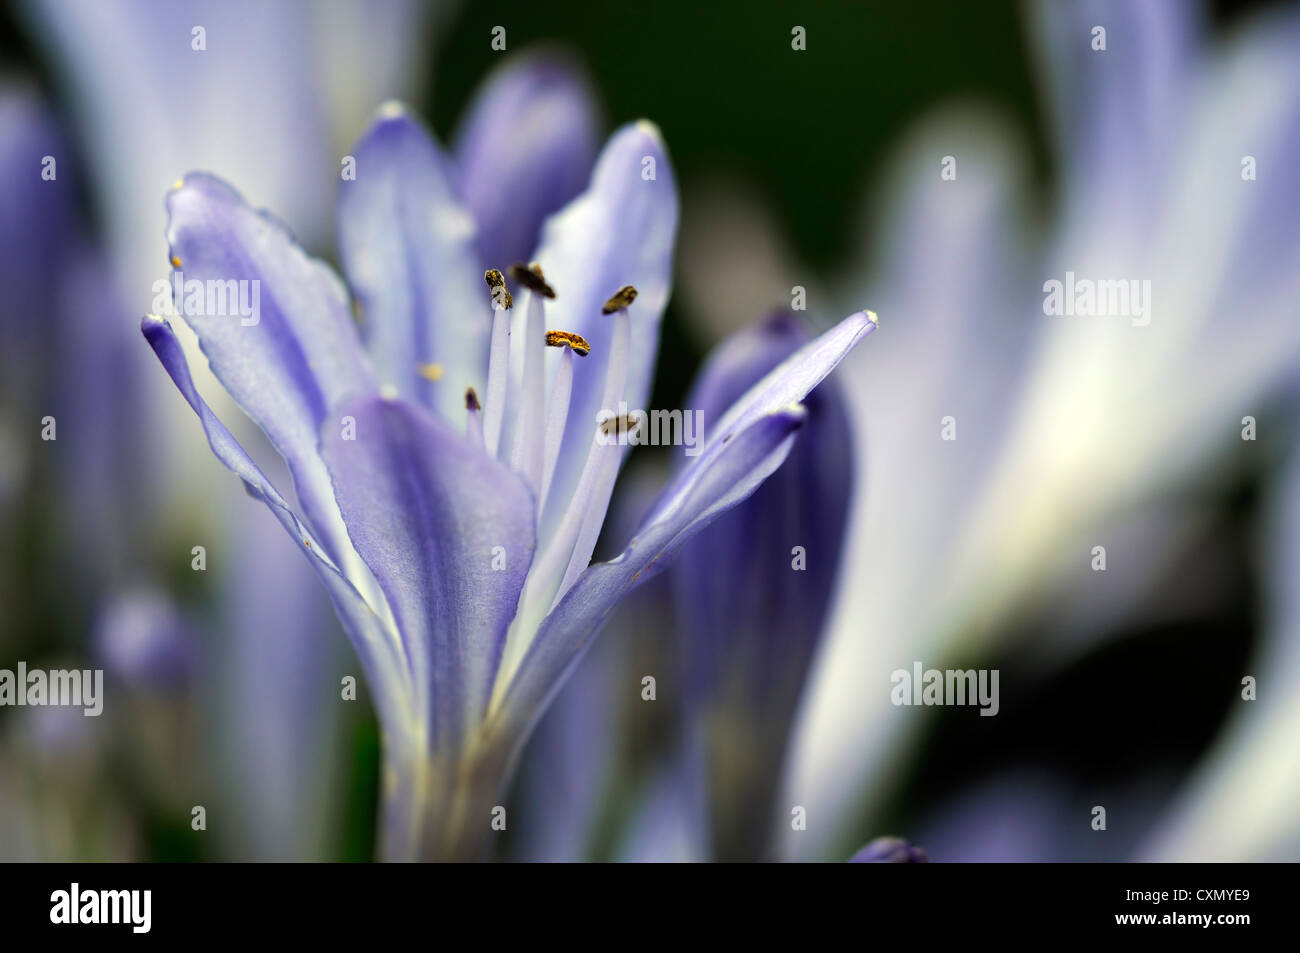 Agapanthus africanus blue lily flowers flowering blooms closeups agapanthus africanus blue lily flowers flowering blooms closeups close ups ups graphic perennials african lily backlit glow izmirmasajfo